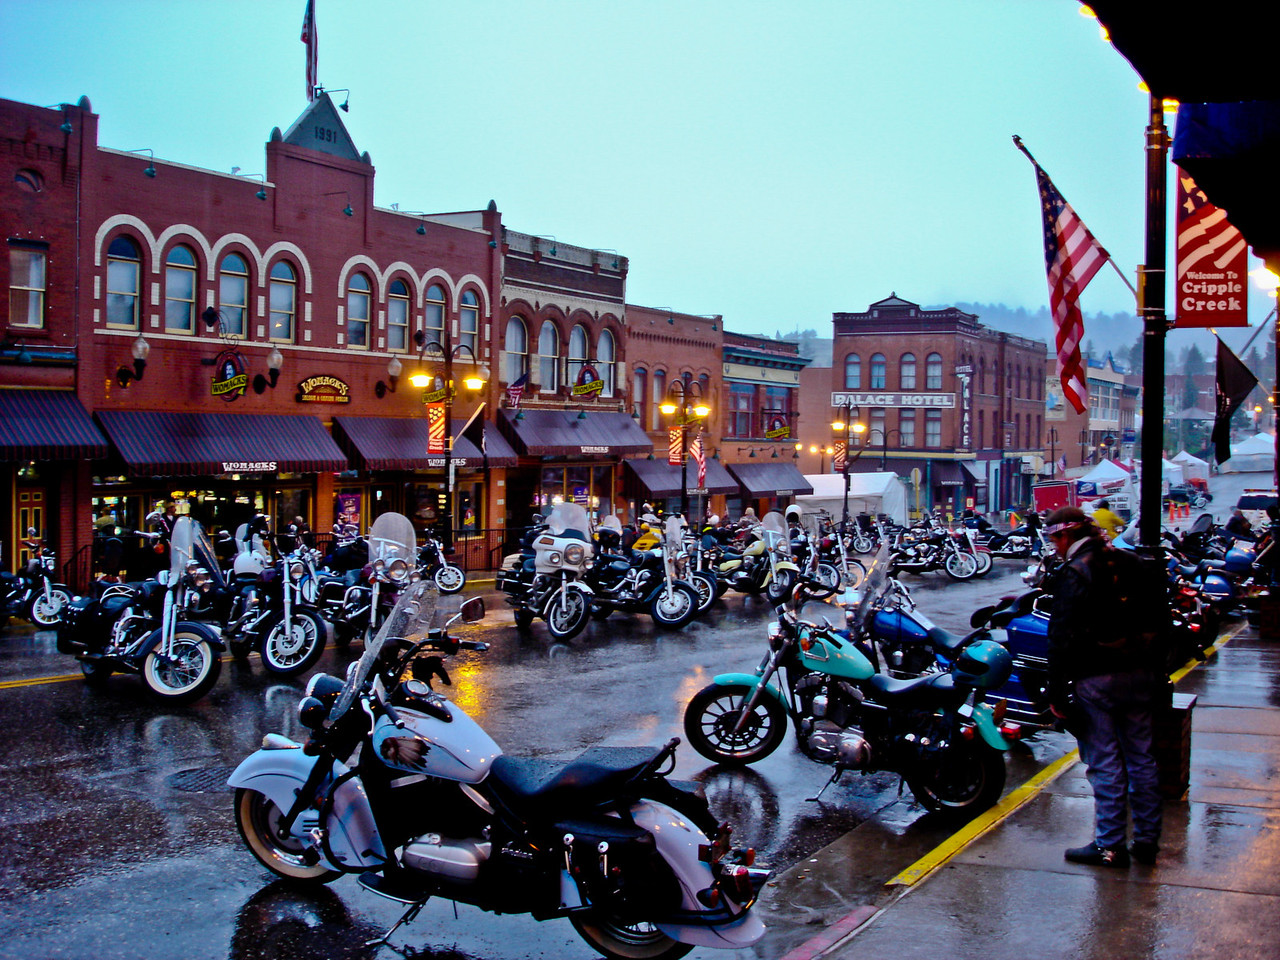 Cripple Creek Veterans Rally Aug-2004